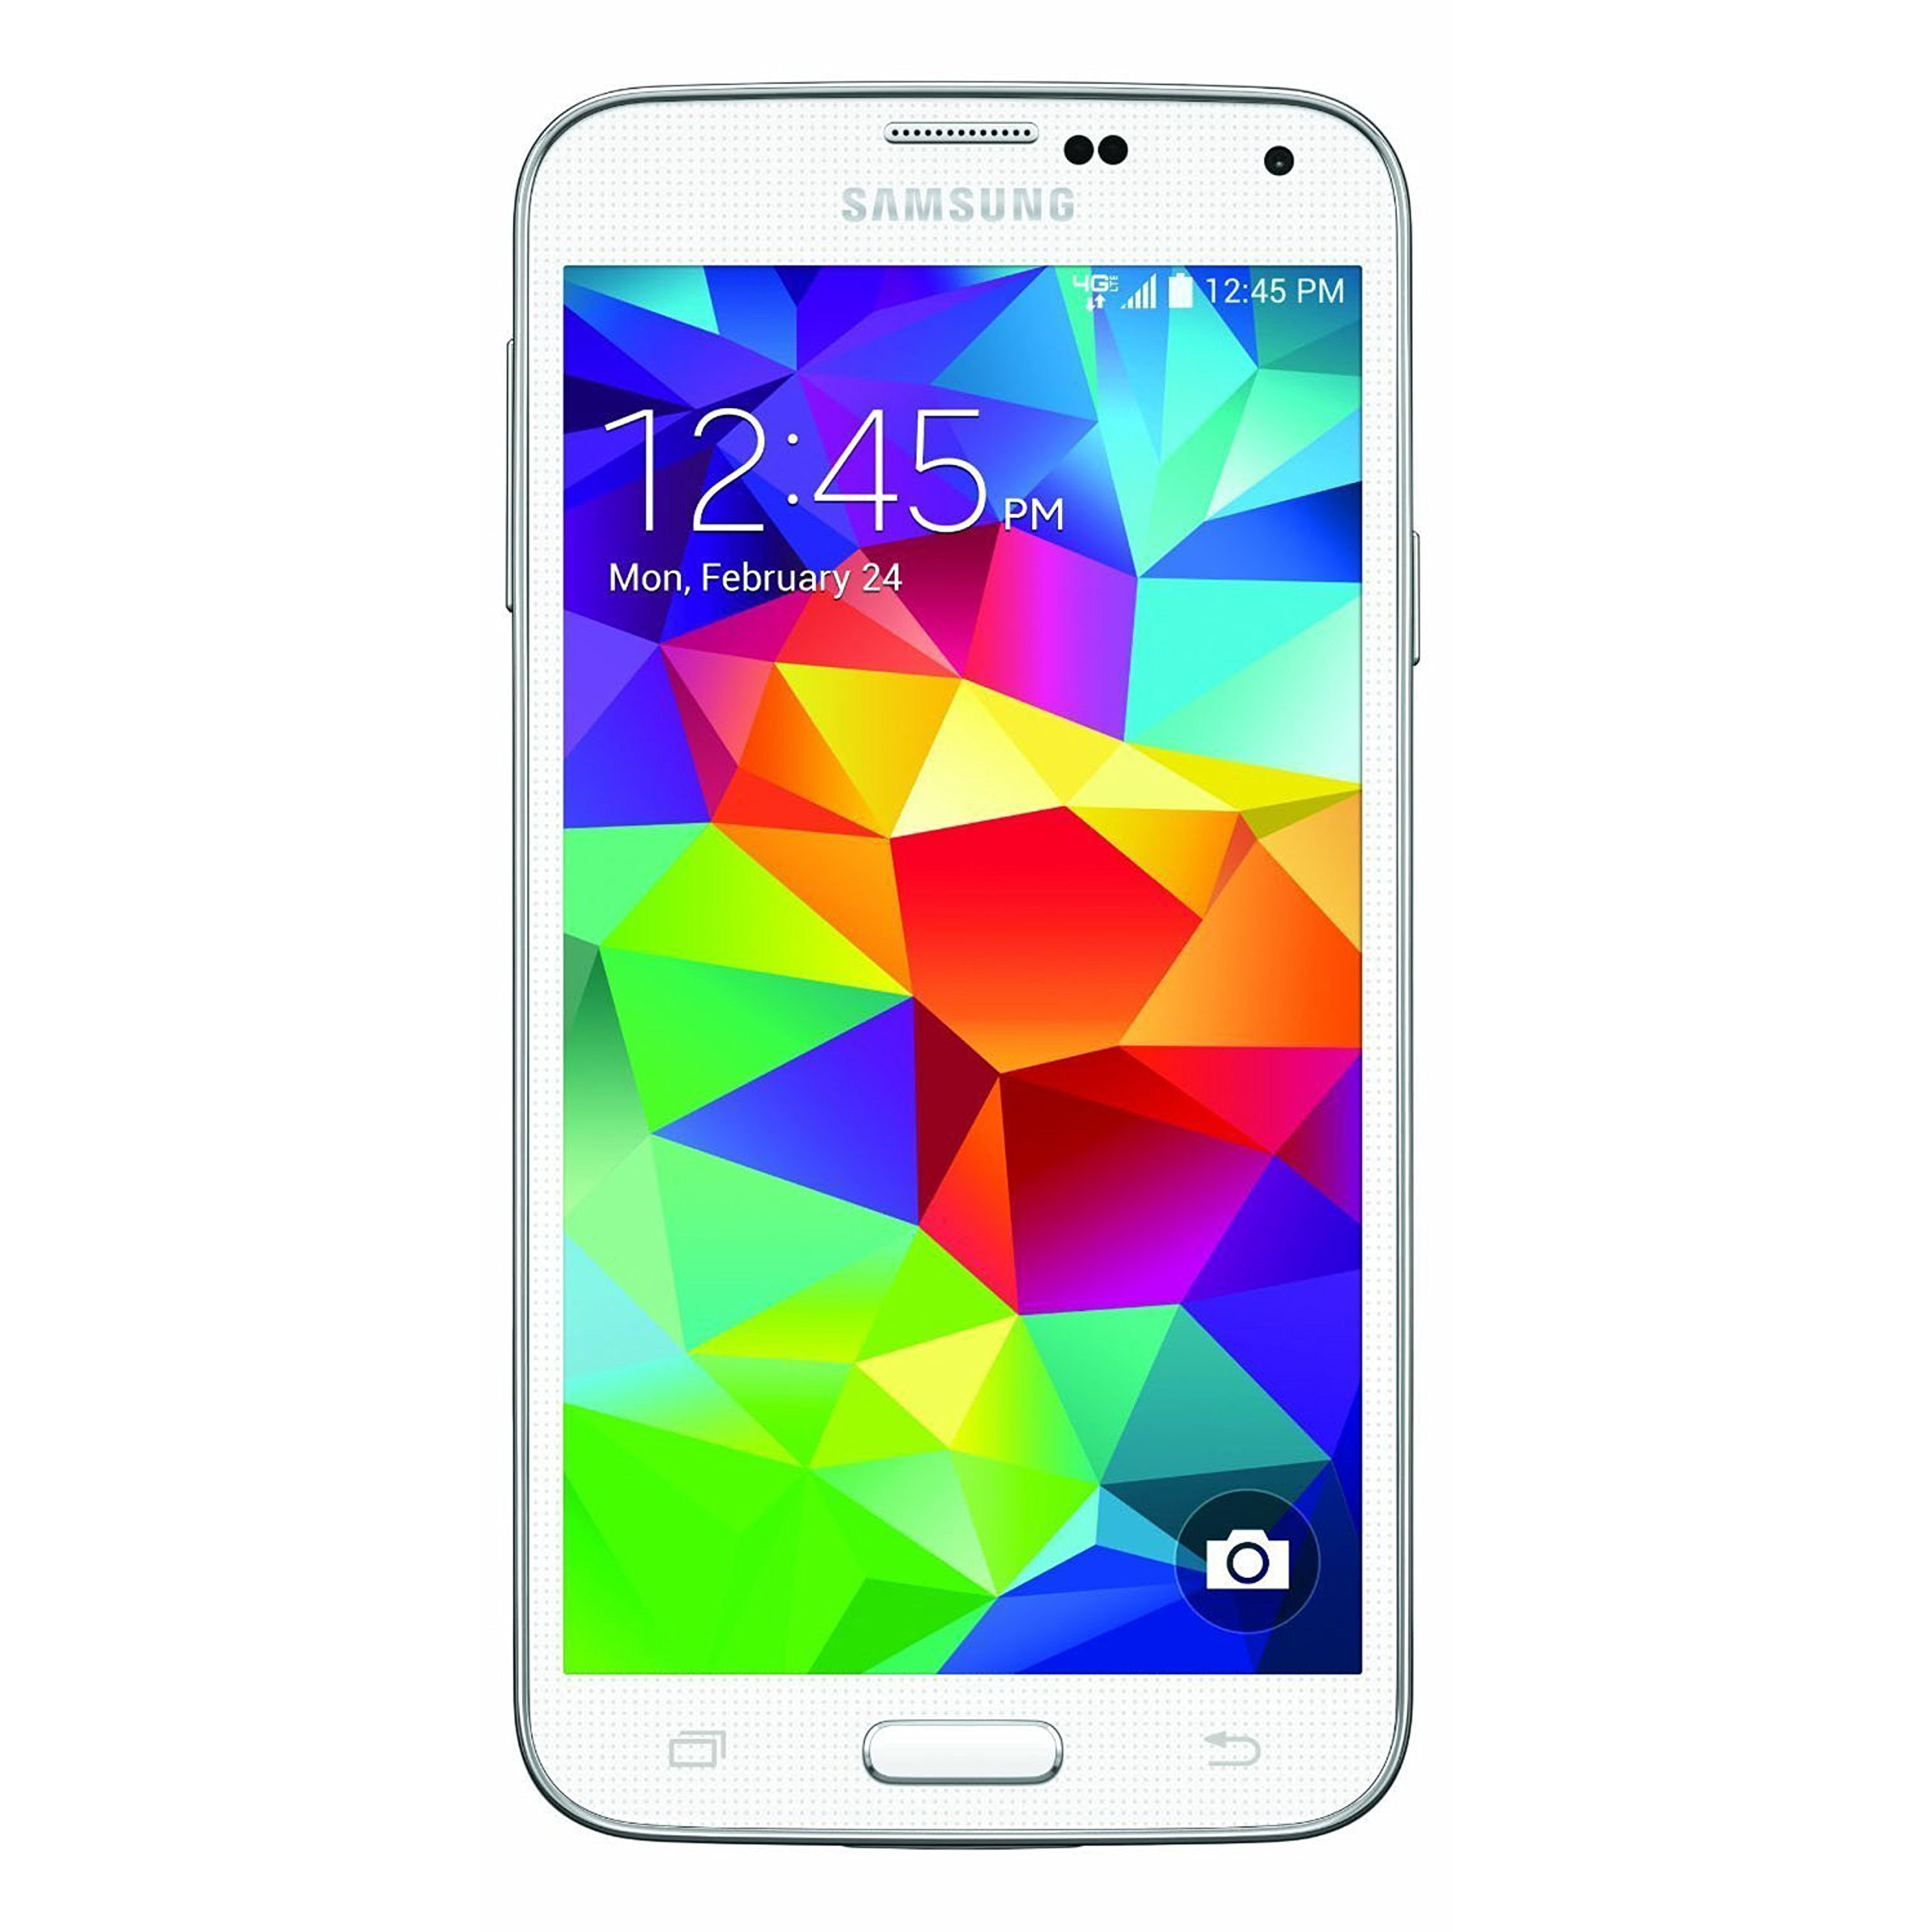 Samsung GS5 5.1'' Certified Pre-Owned Carrier Locked Phone - 16GB - White (verizon)